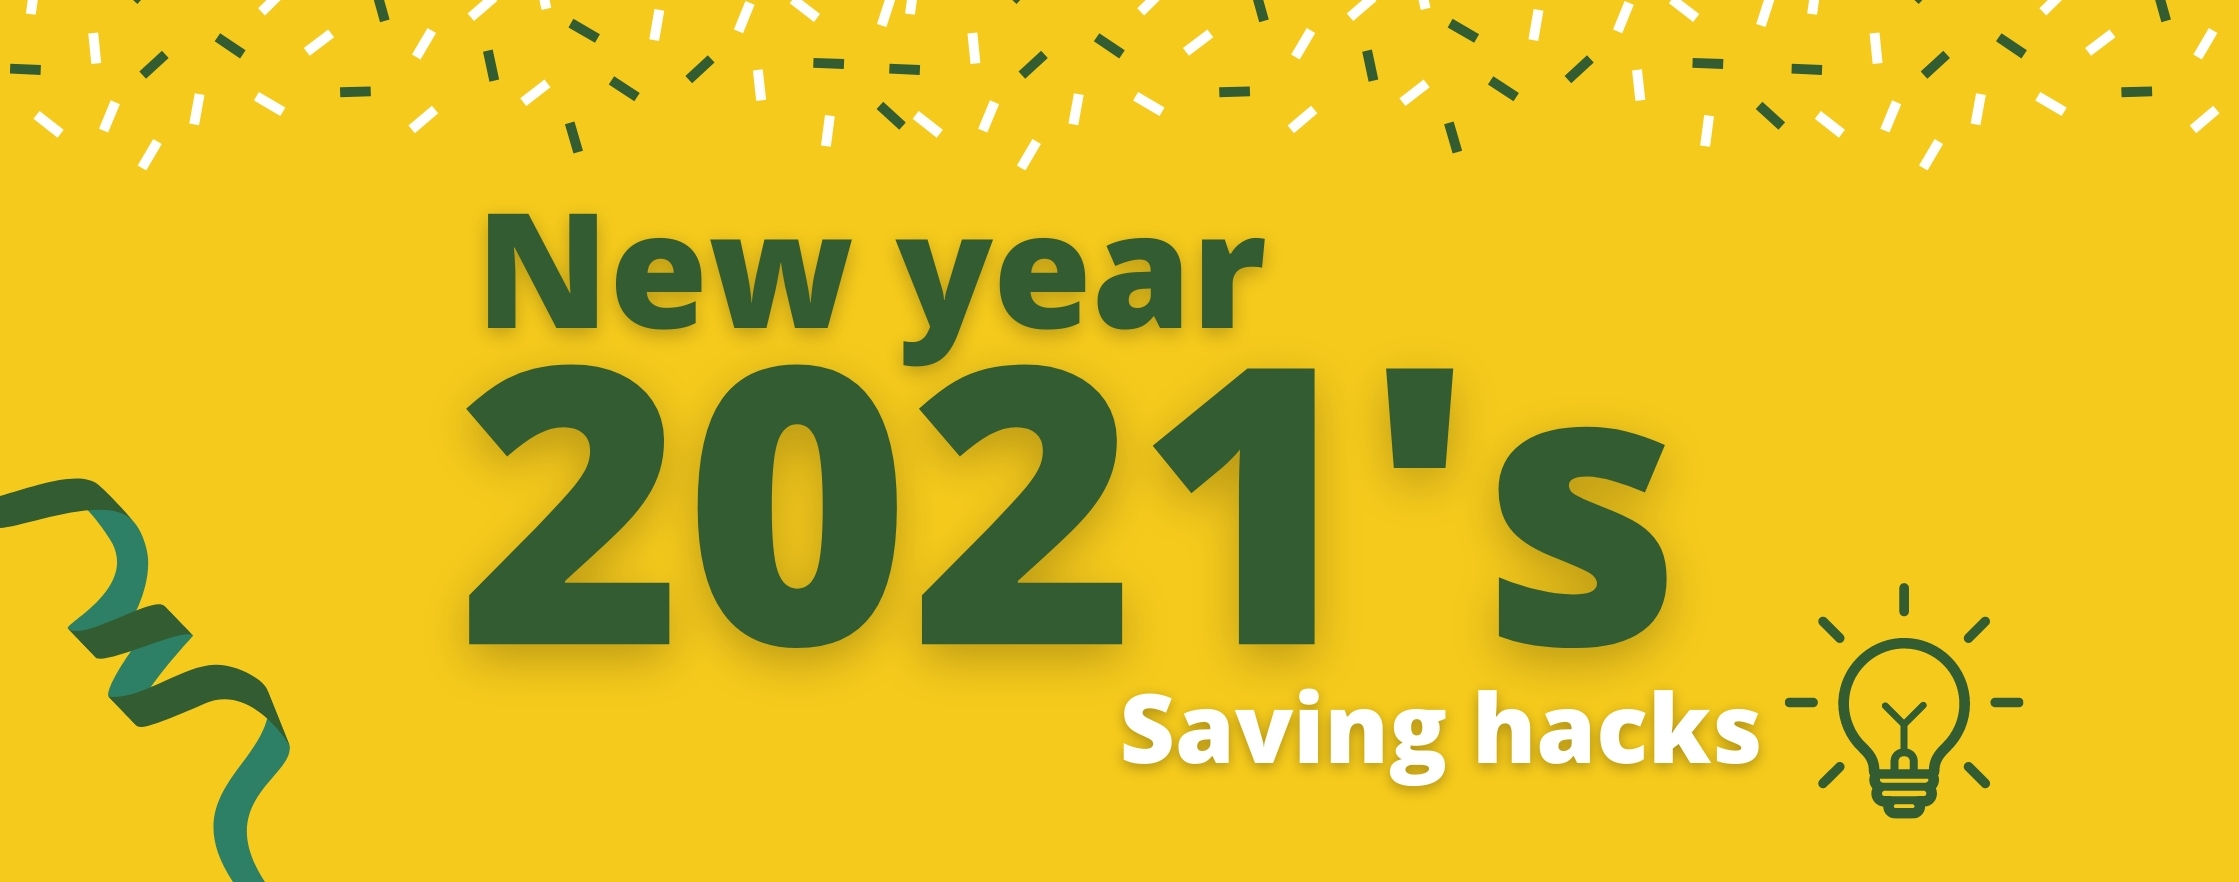 new-year-2021s-saving-hacks